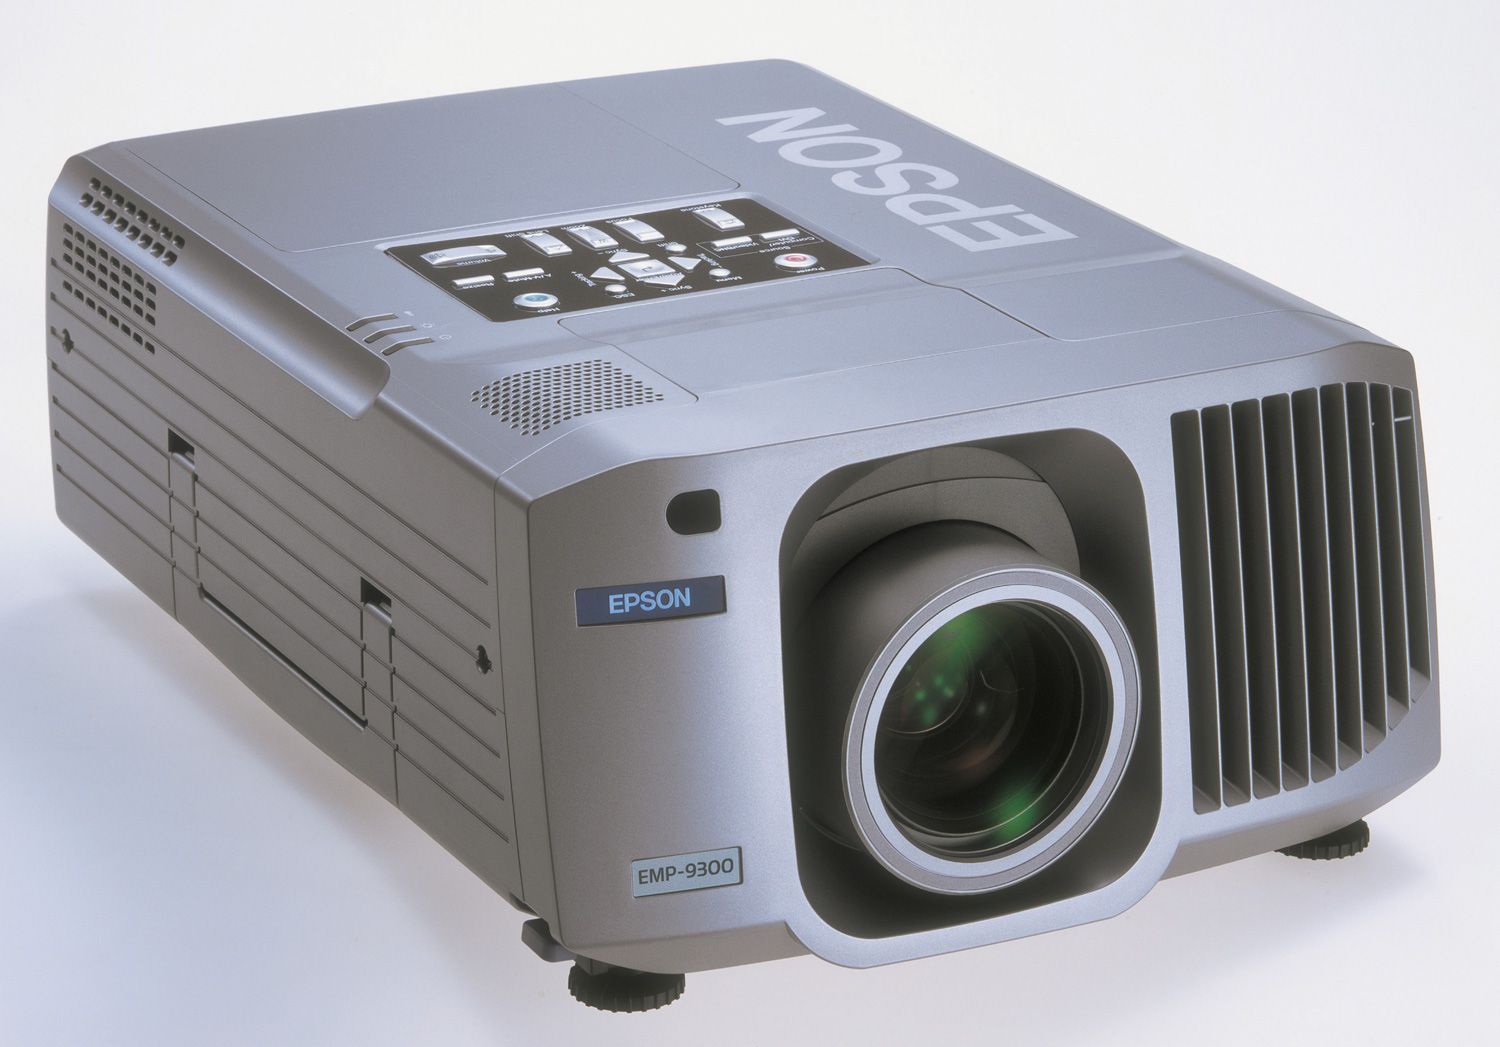 Need to replace Epson EMP- 9300 projector lamp? Our guide shows you how!